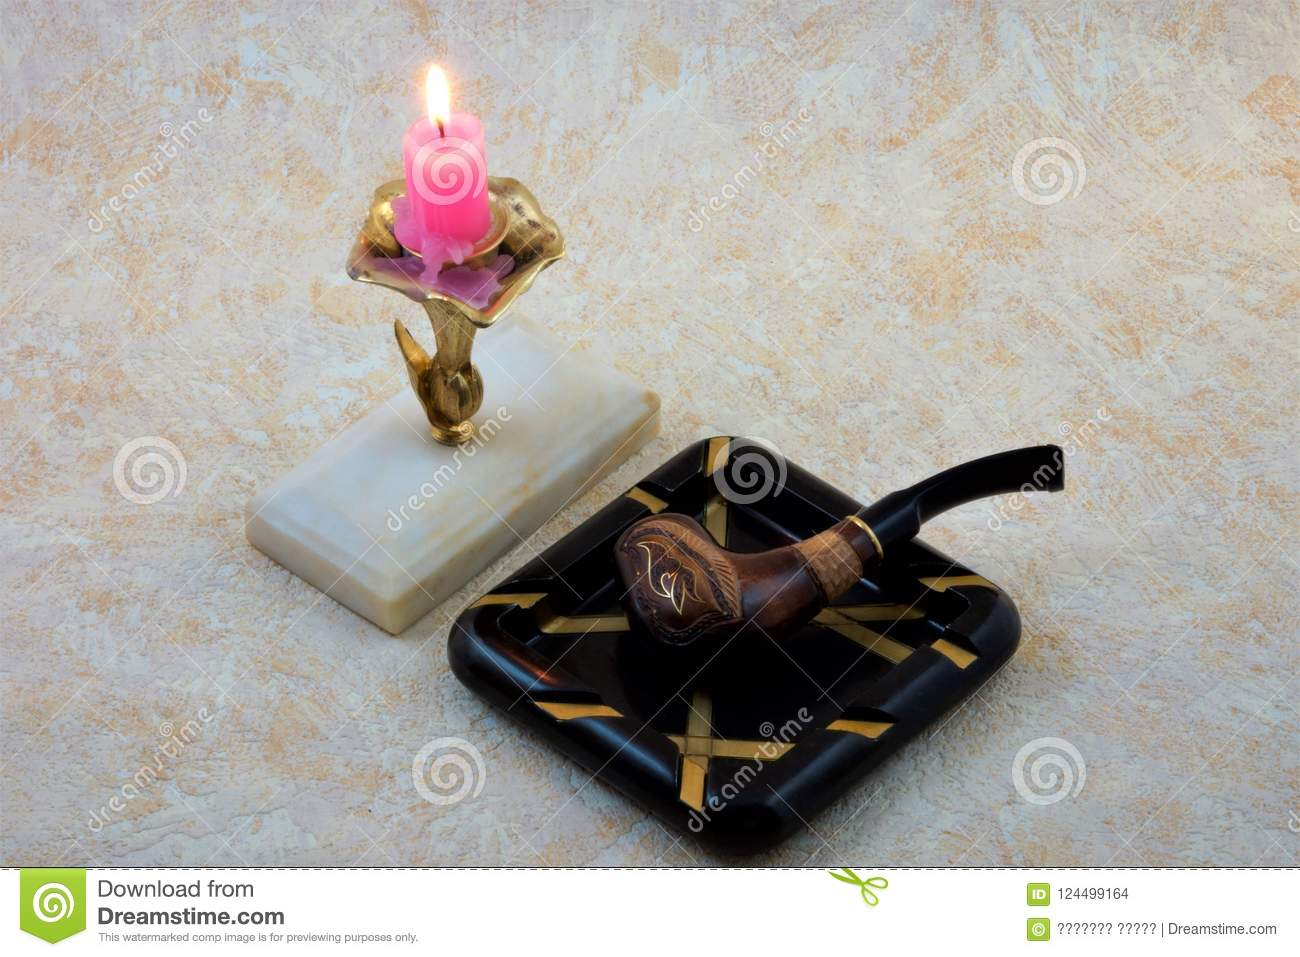 Pipe with Smoking tobacco ornament candle ashtray